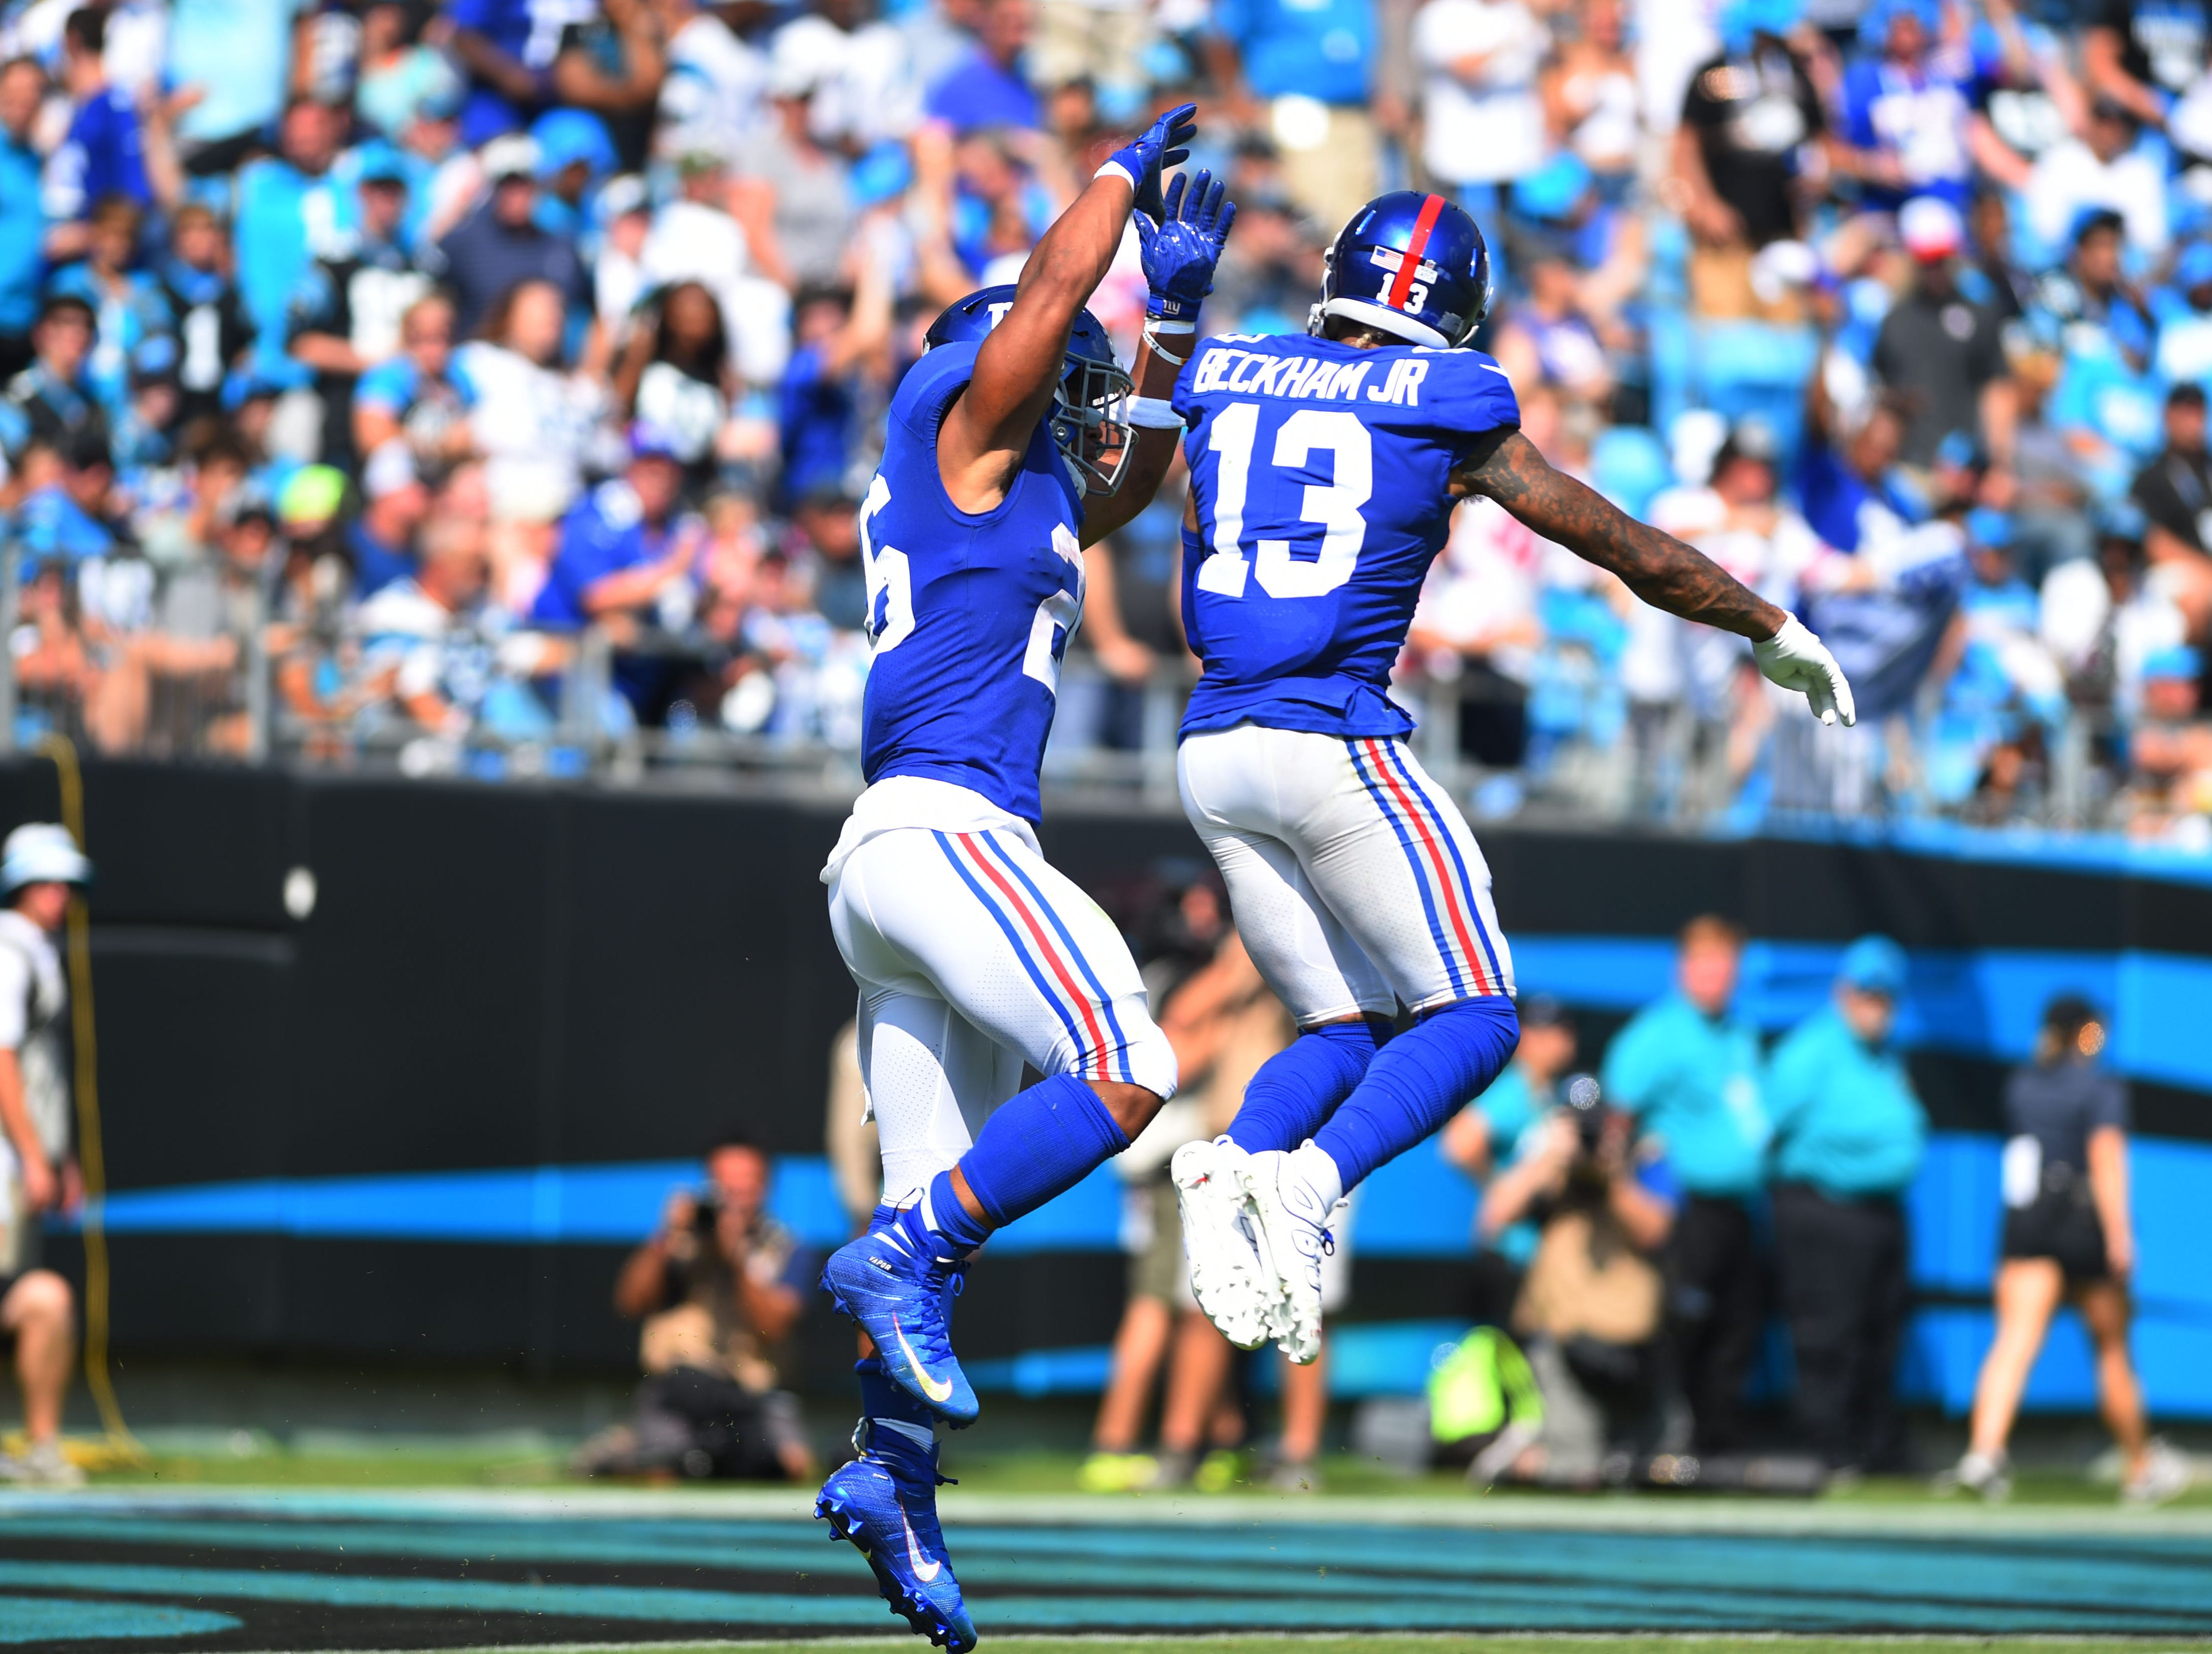 Giants running back Saquon Barkley, left, and wide receiver Odell Beckham Jr. combined for the wackiest touchdown in Week 5 -- a 57-yard TD pass from Beckham to Barkley.